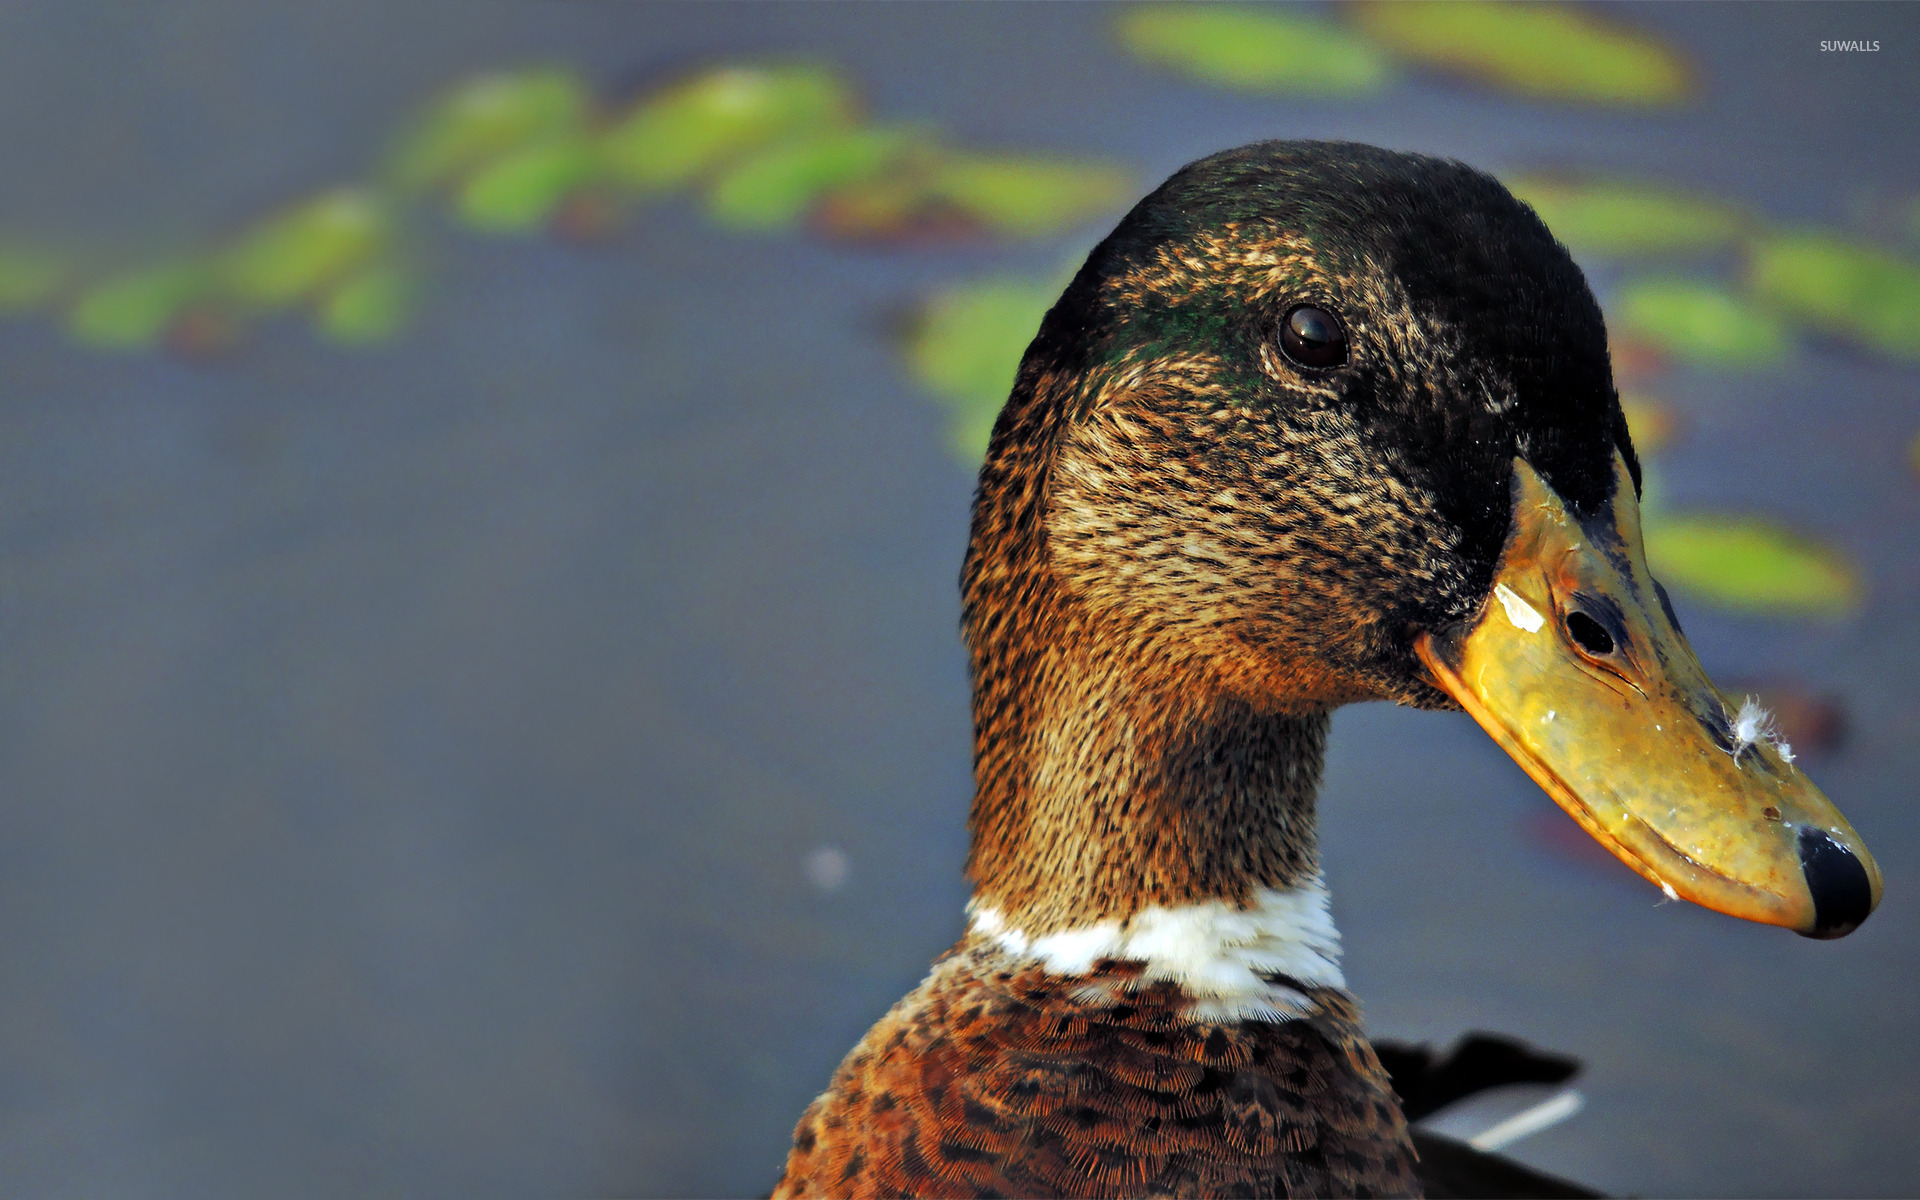 Duck wallpaper Animal wallpapers 15259